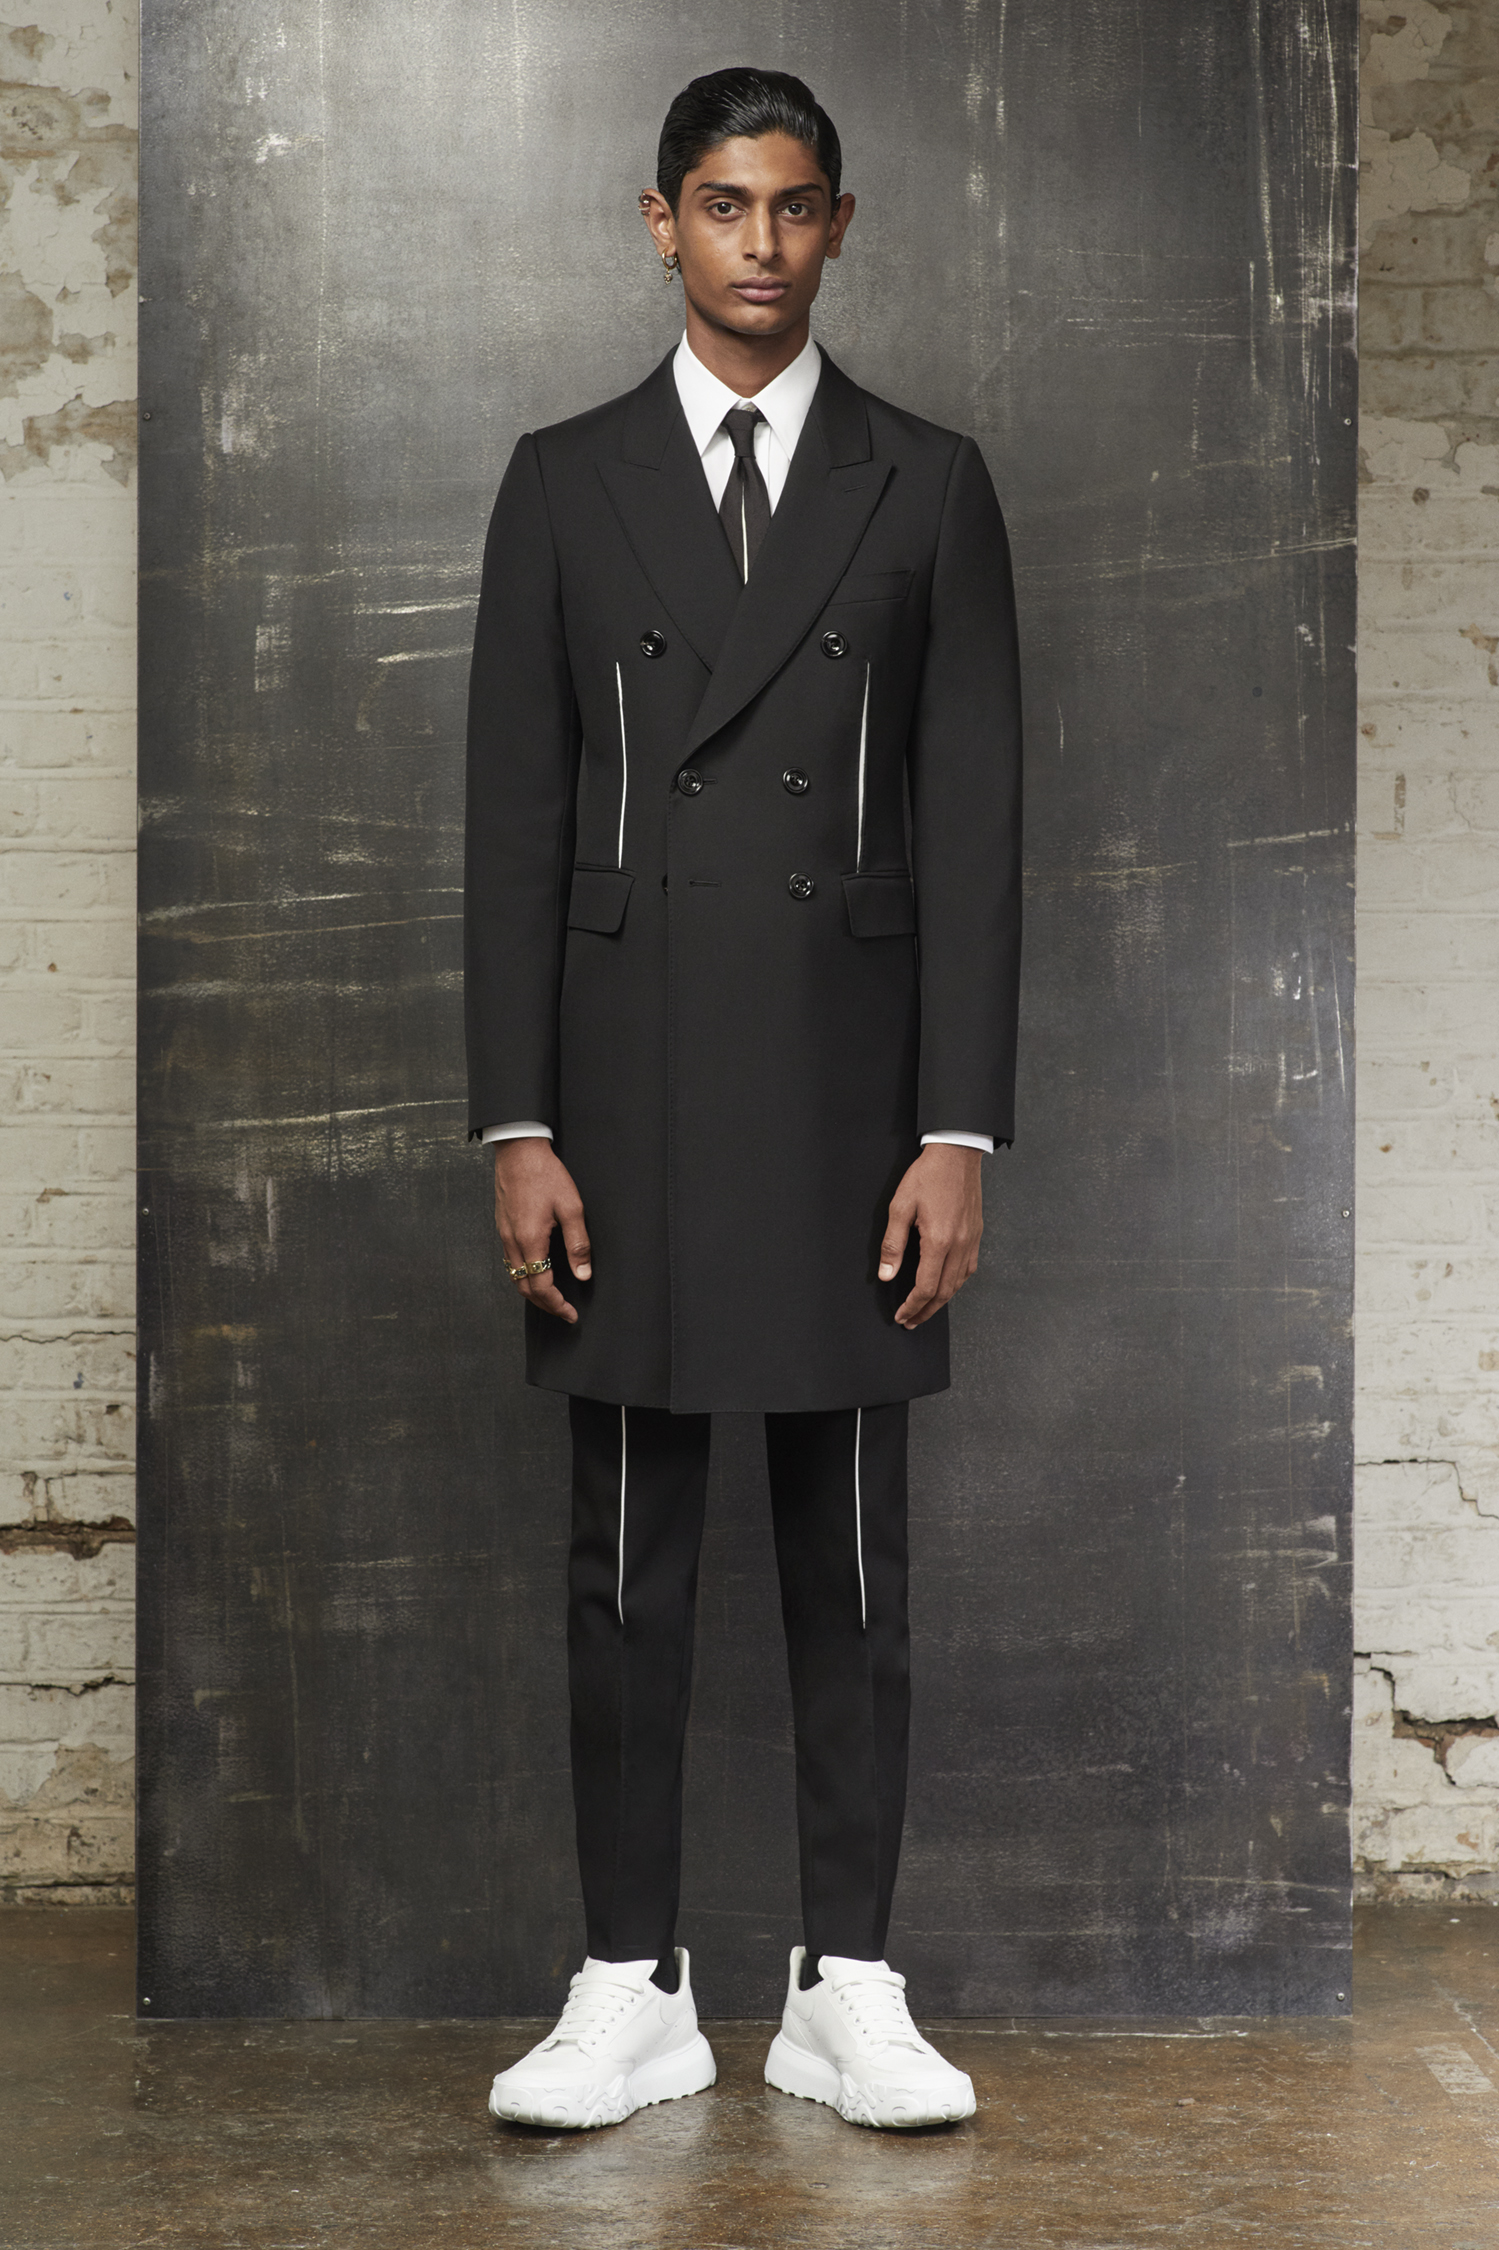 Alexander McQueen Pre-Fall 2020 Men's Fashion Collection